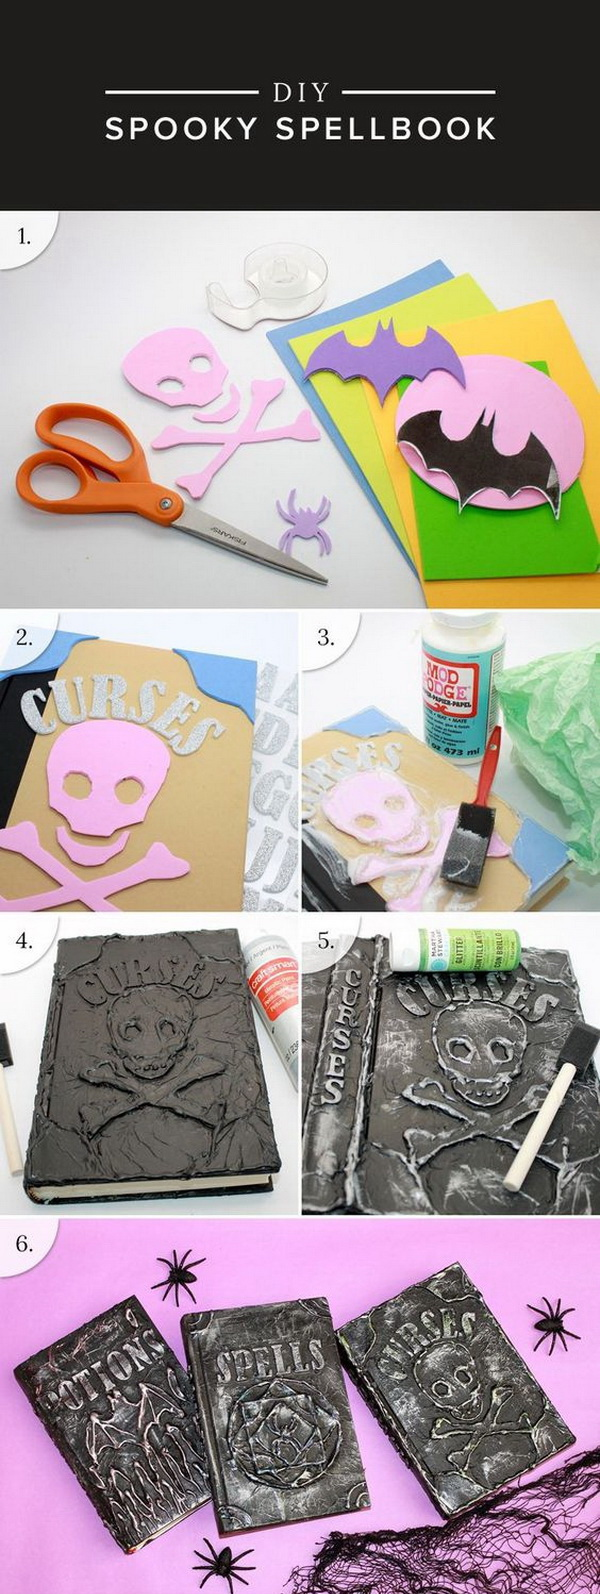 DIY Halloween Spell Books. Recycle old books that you don't need into these DIY Spell Books! They will surely add a spooky touch to your Halloween decor.